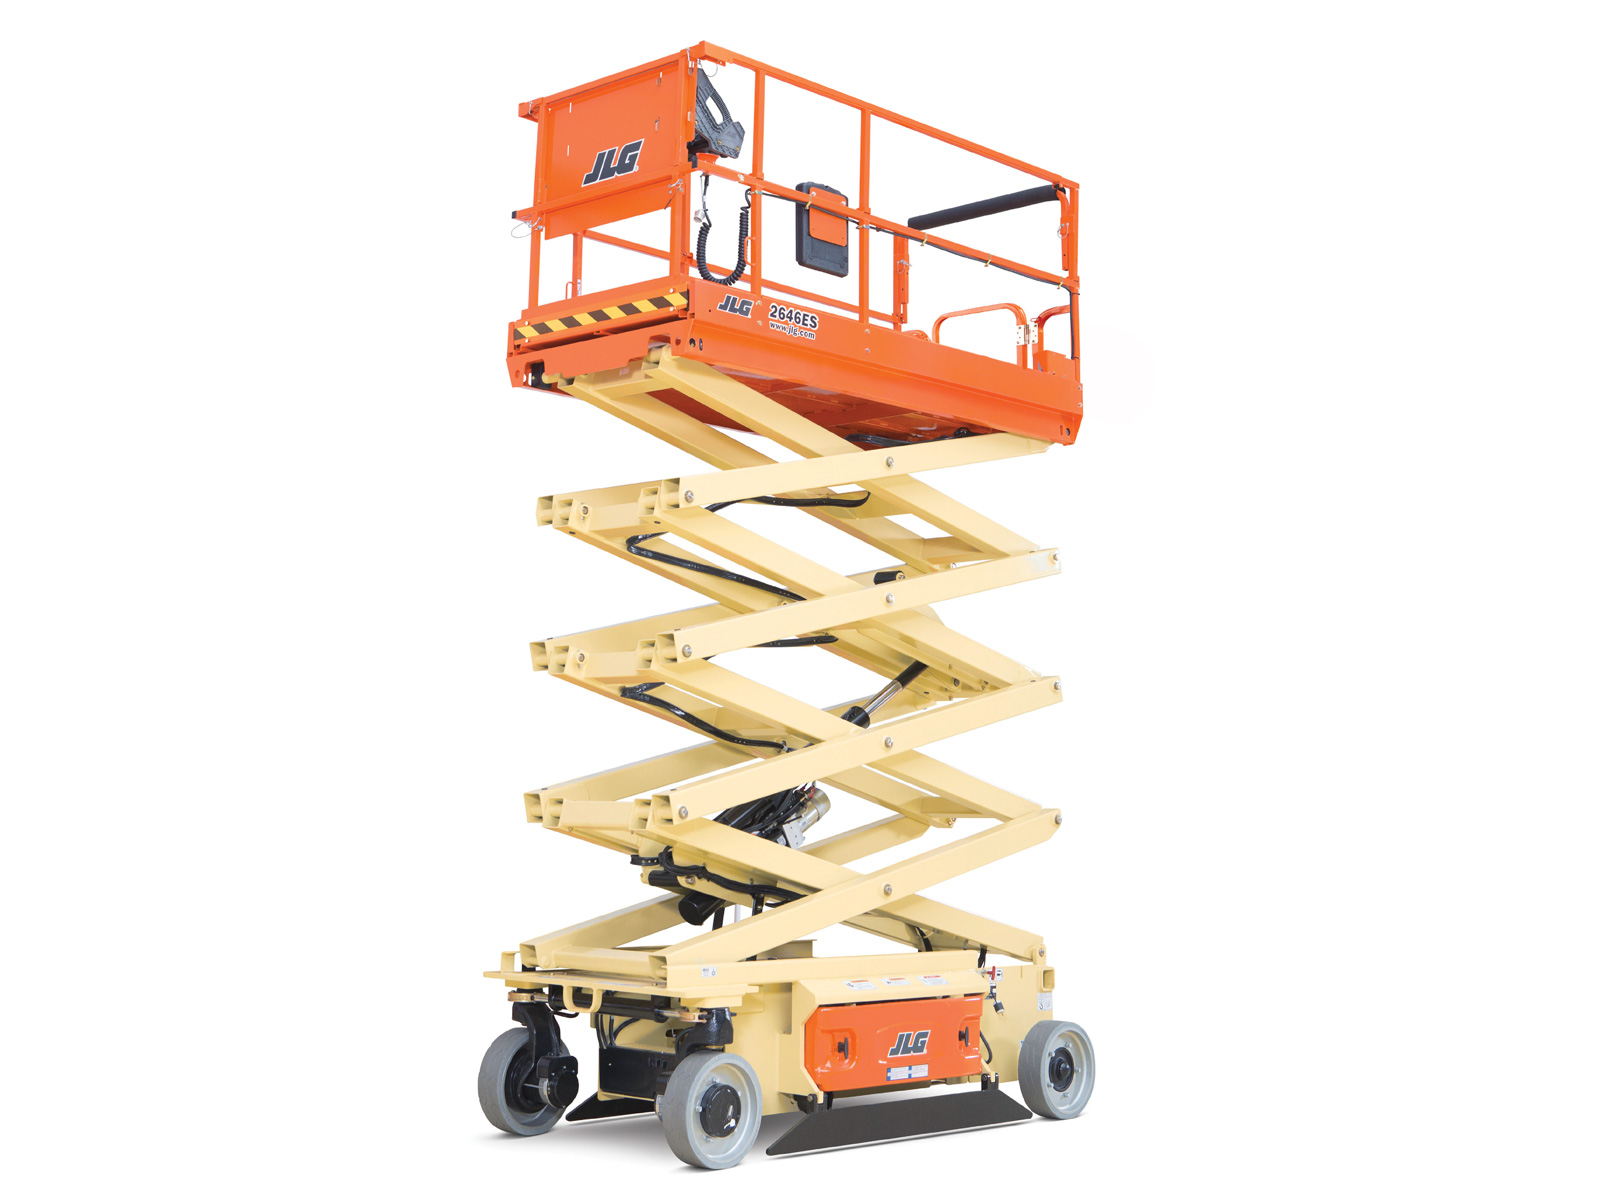 Jlg Cm2546 Wiring Diagram And Schematics Diagrams Manuals Source 2632es Electric Scissor Lift Rh Com 1932